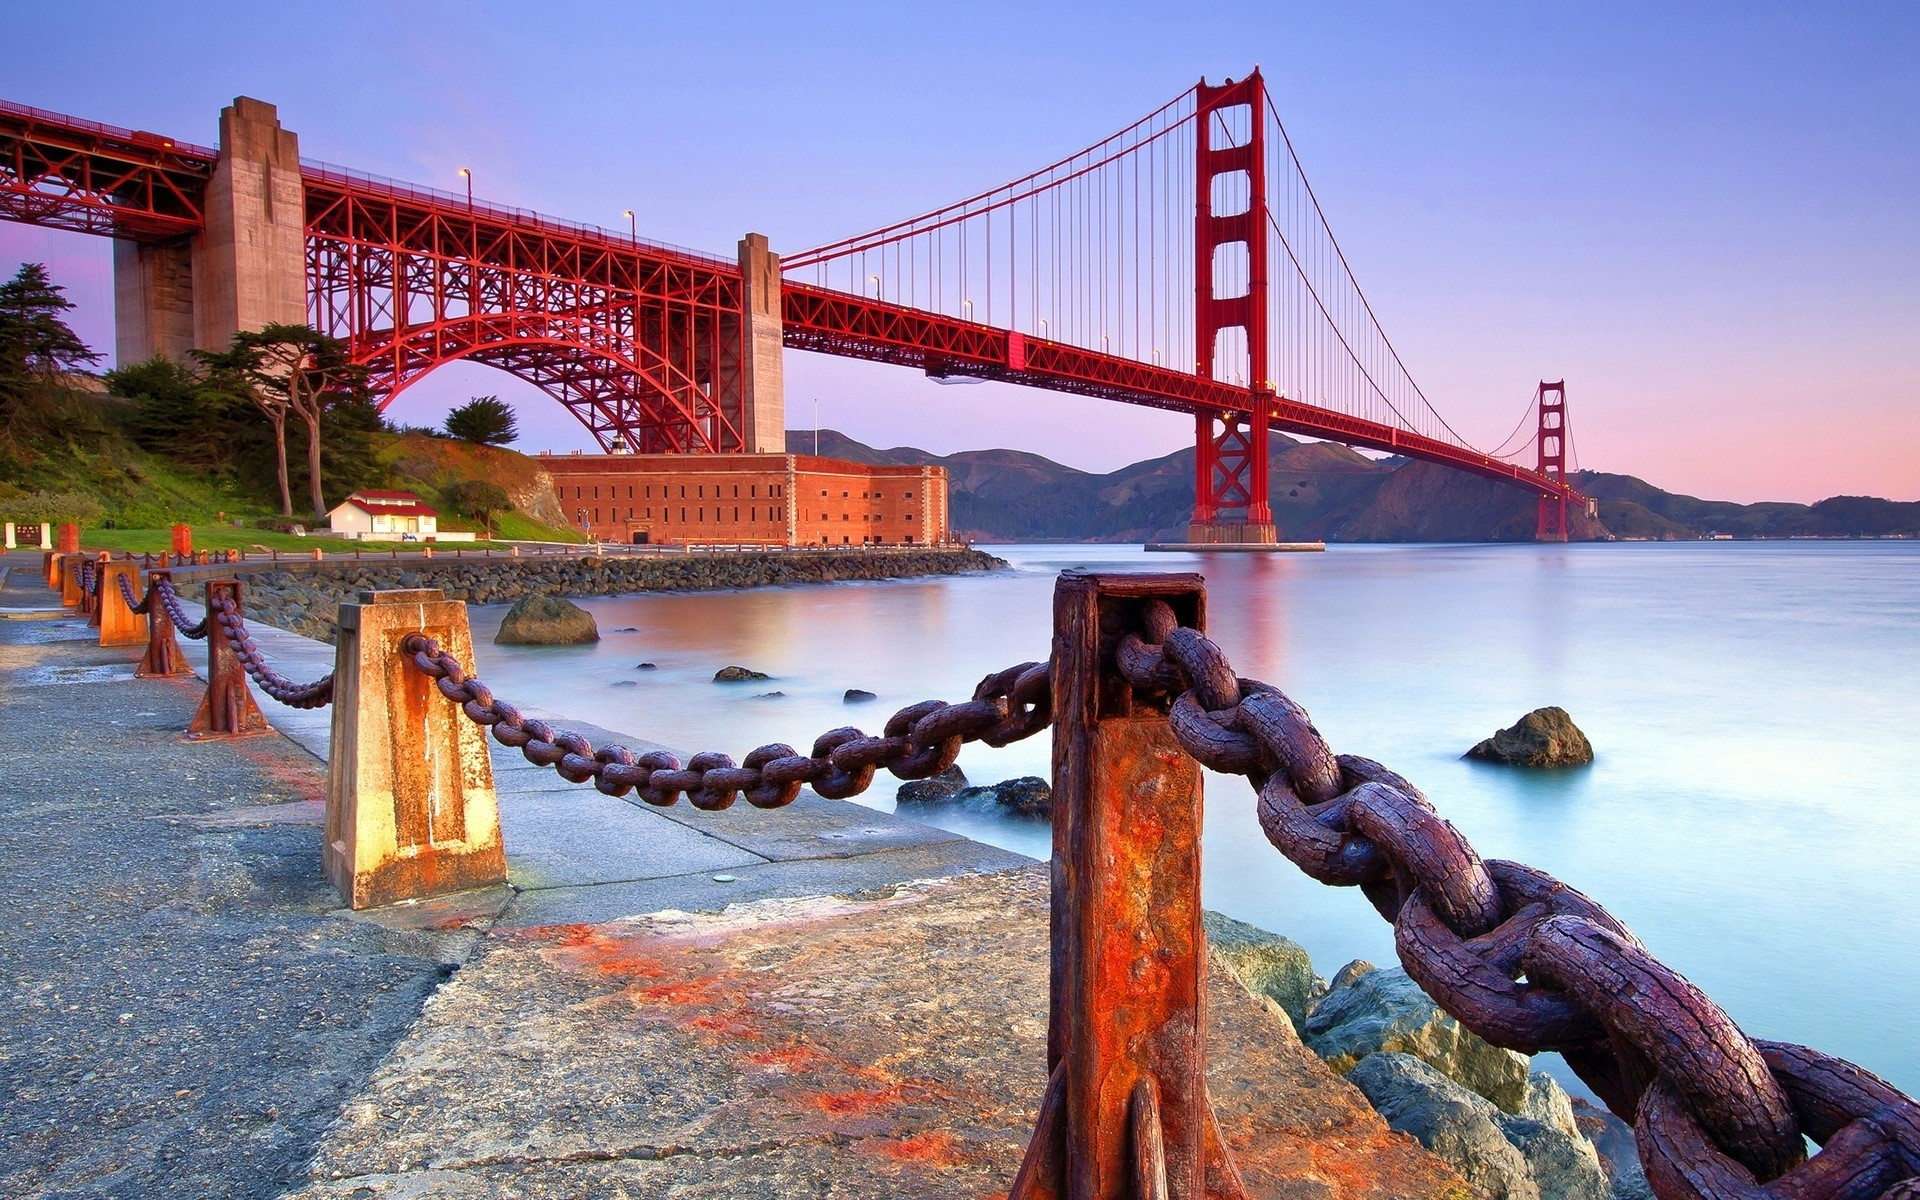 Res: 1920x1200, Costa en el punte Golden Gate Full HD | Wallpaper